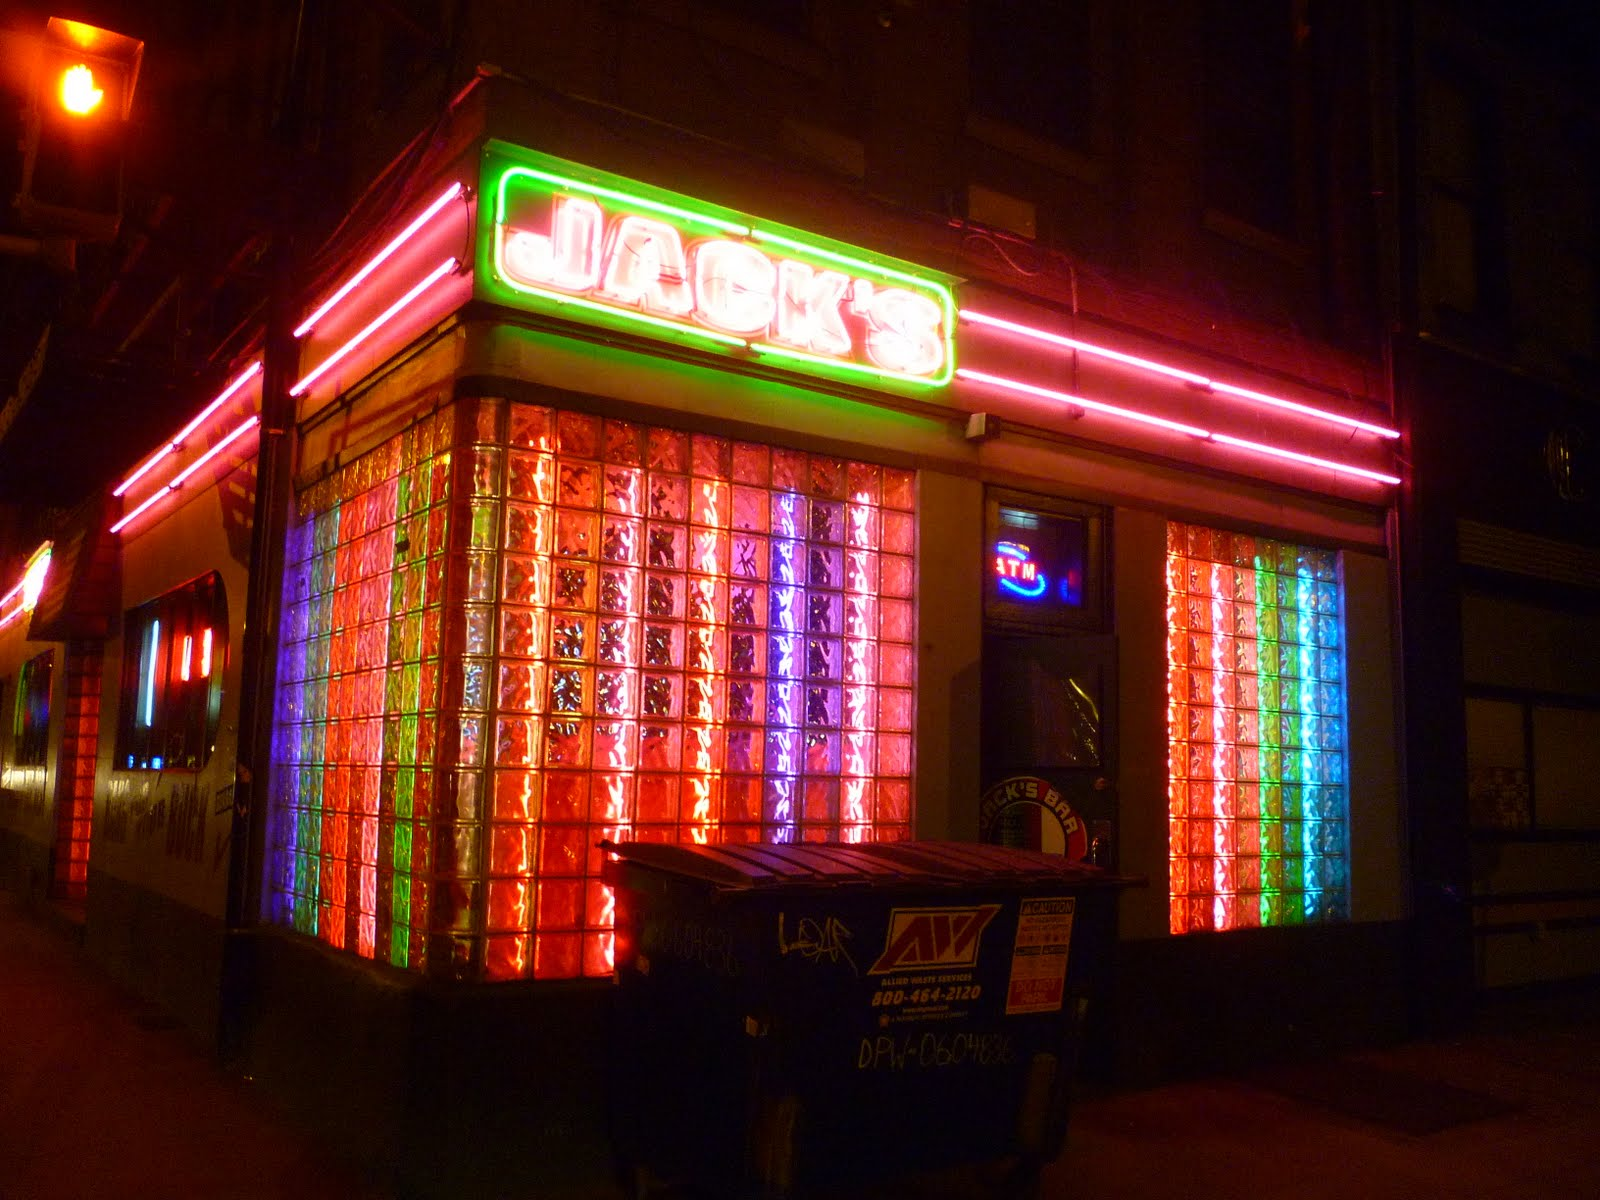 rainbow lights & neon sign outside Jack's Bar in Pittsburgh